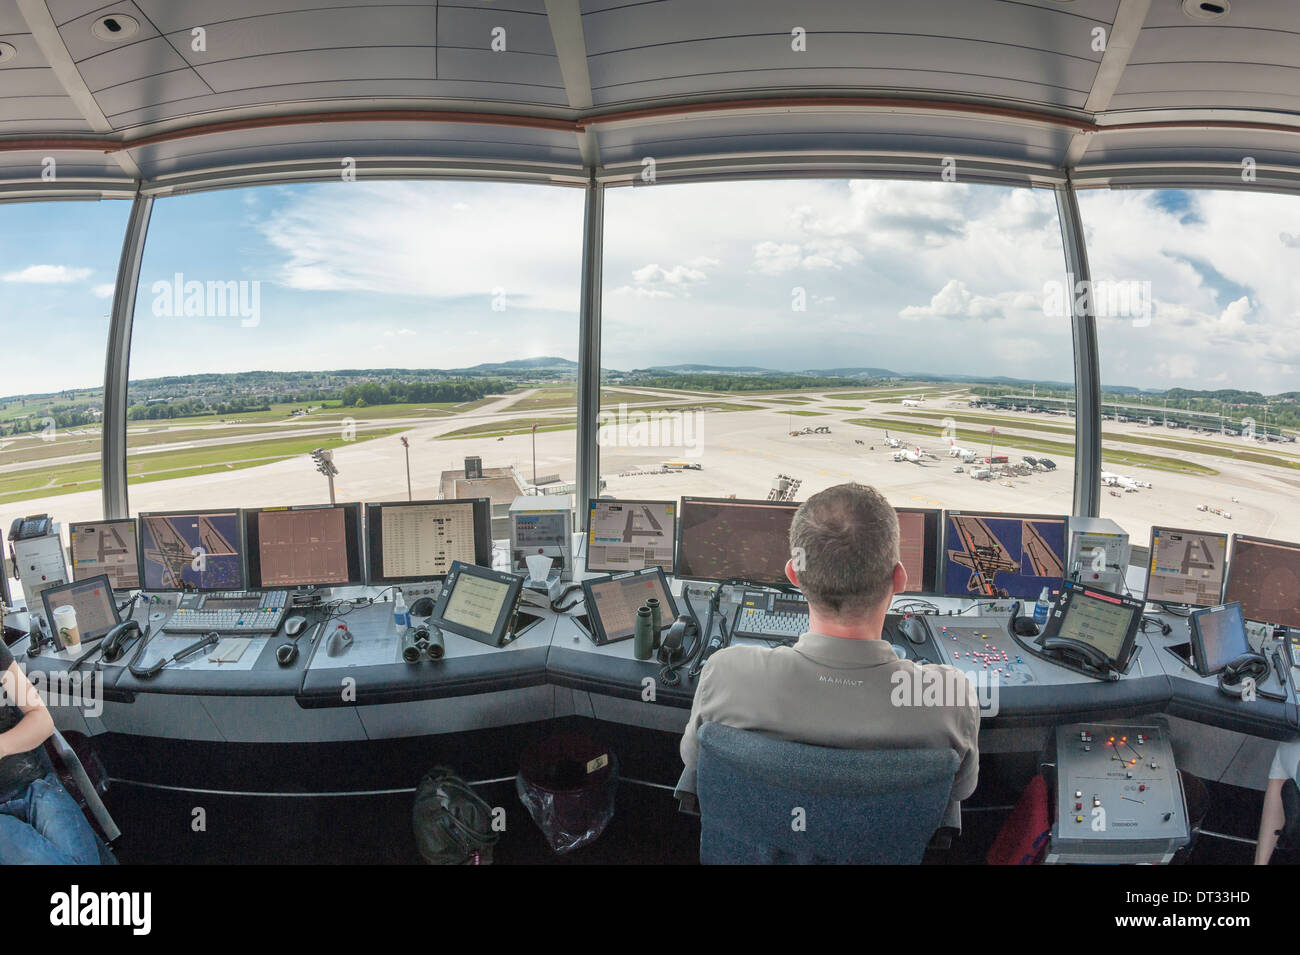 Air traffic controllers in the control tower of Zurich/Kloten international airport are monitoring the airport's airfield. Stock Photo